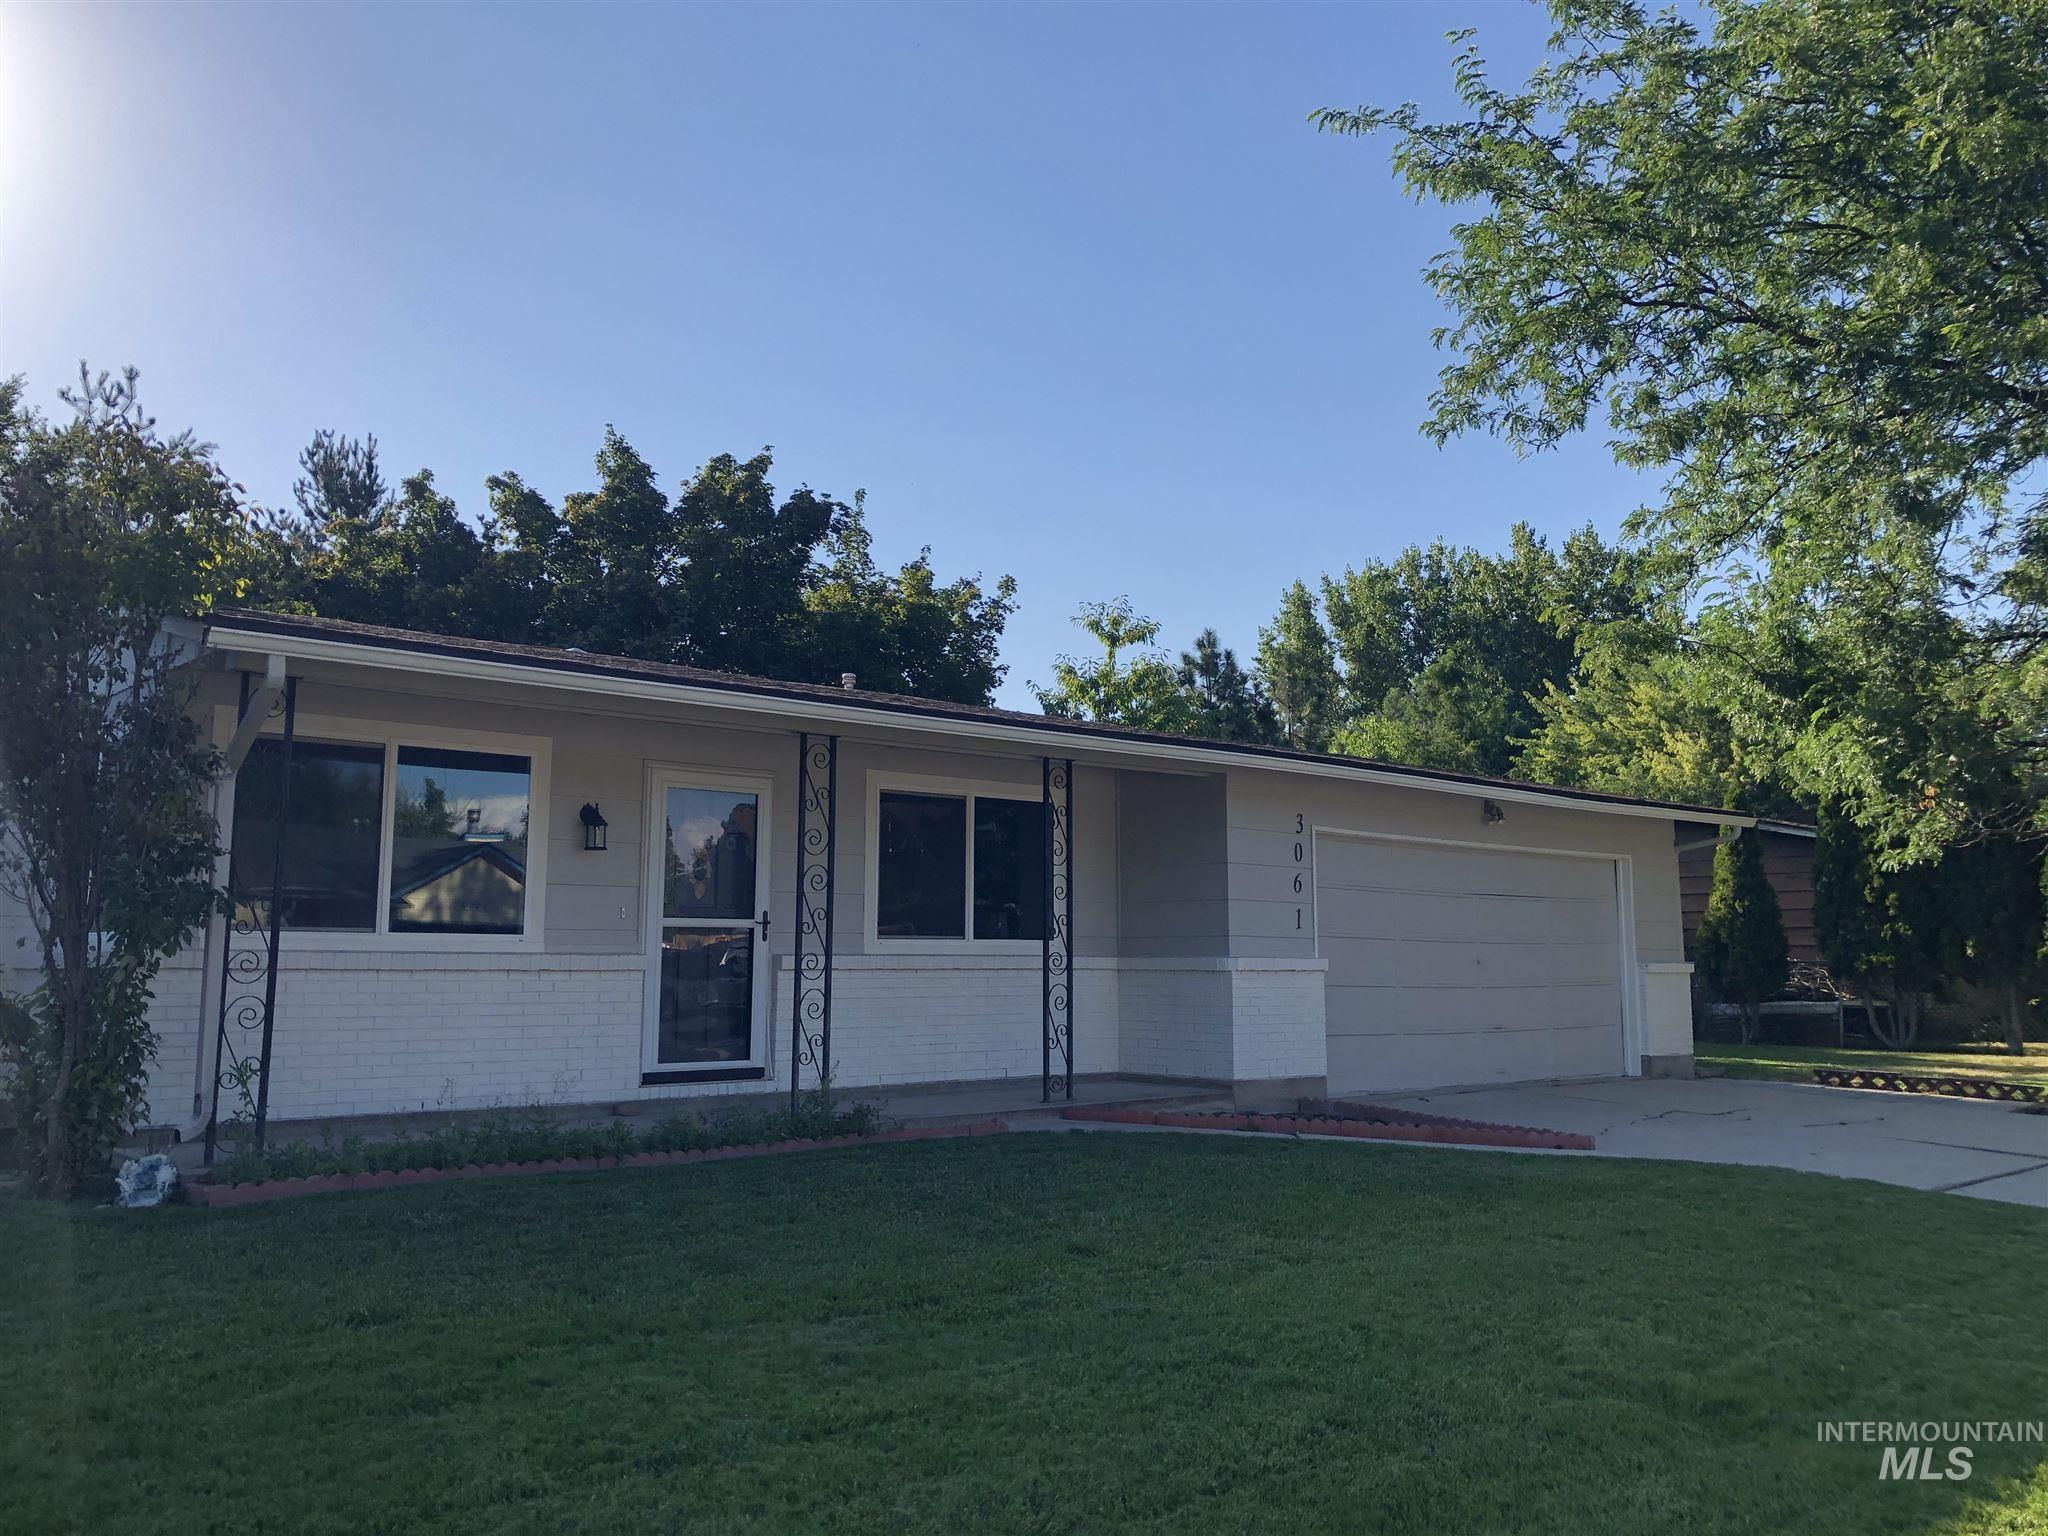 Photo for 3061 N Constantine St, Boise, ID 83704 (MLS # 98775820)